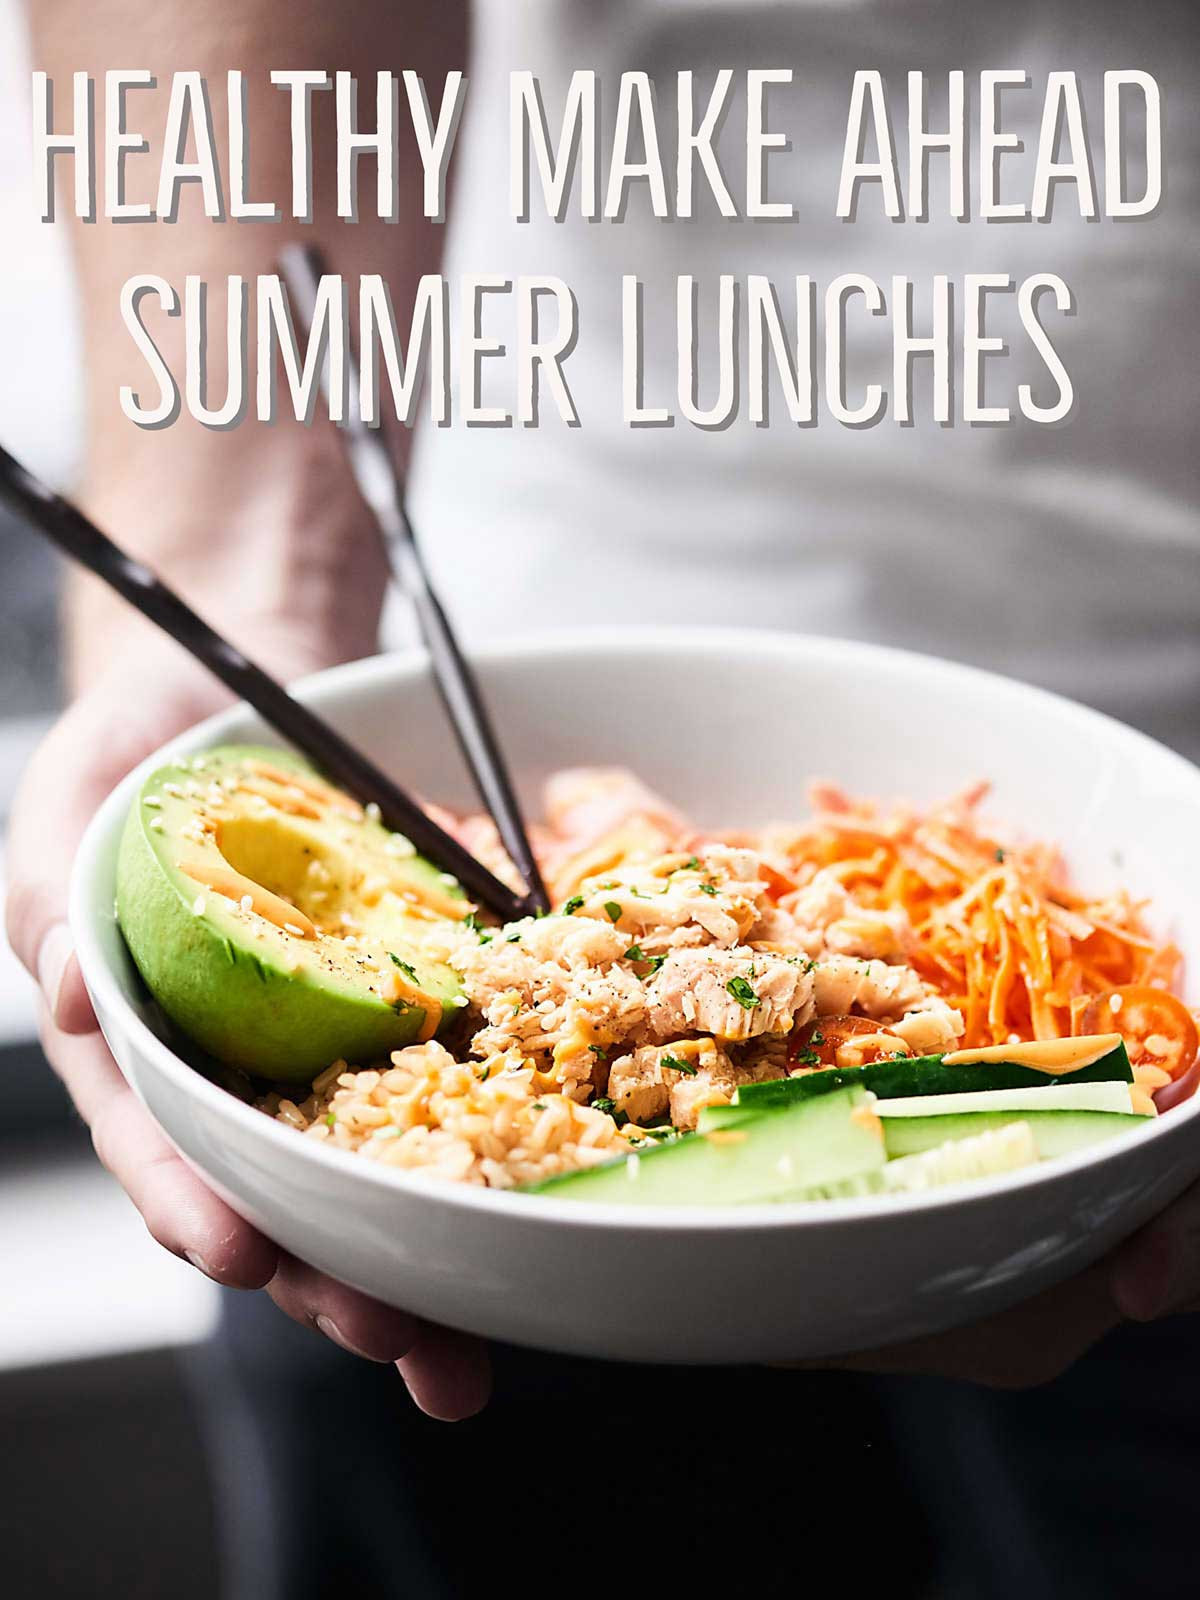 Healthy Summer Lunches  Easy Healthy Make Ahead Summer Lunches That Aren t All